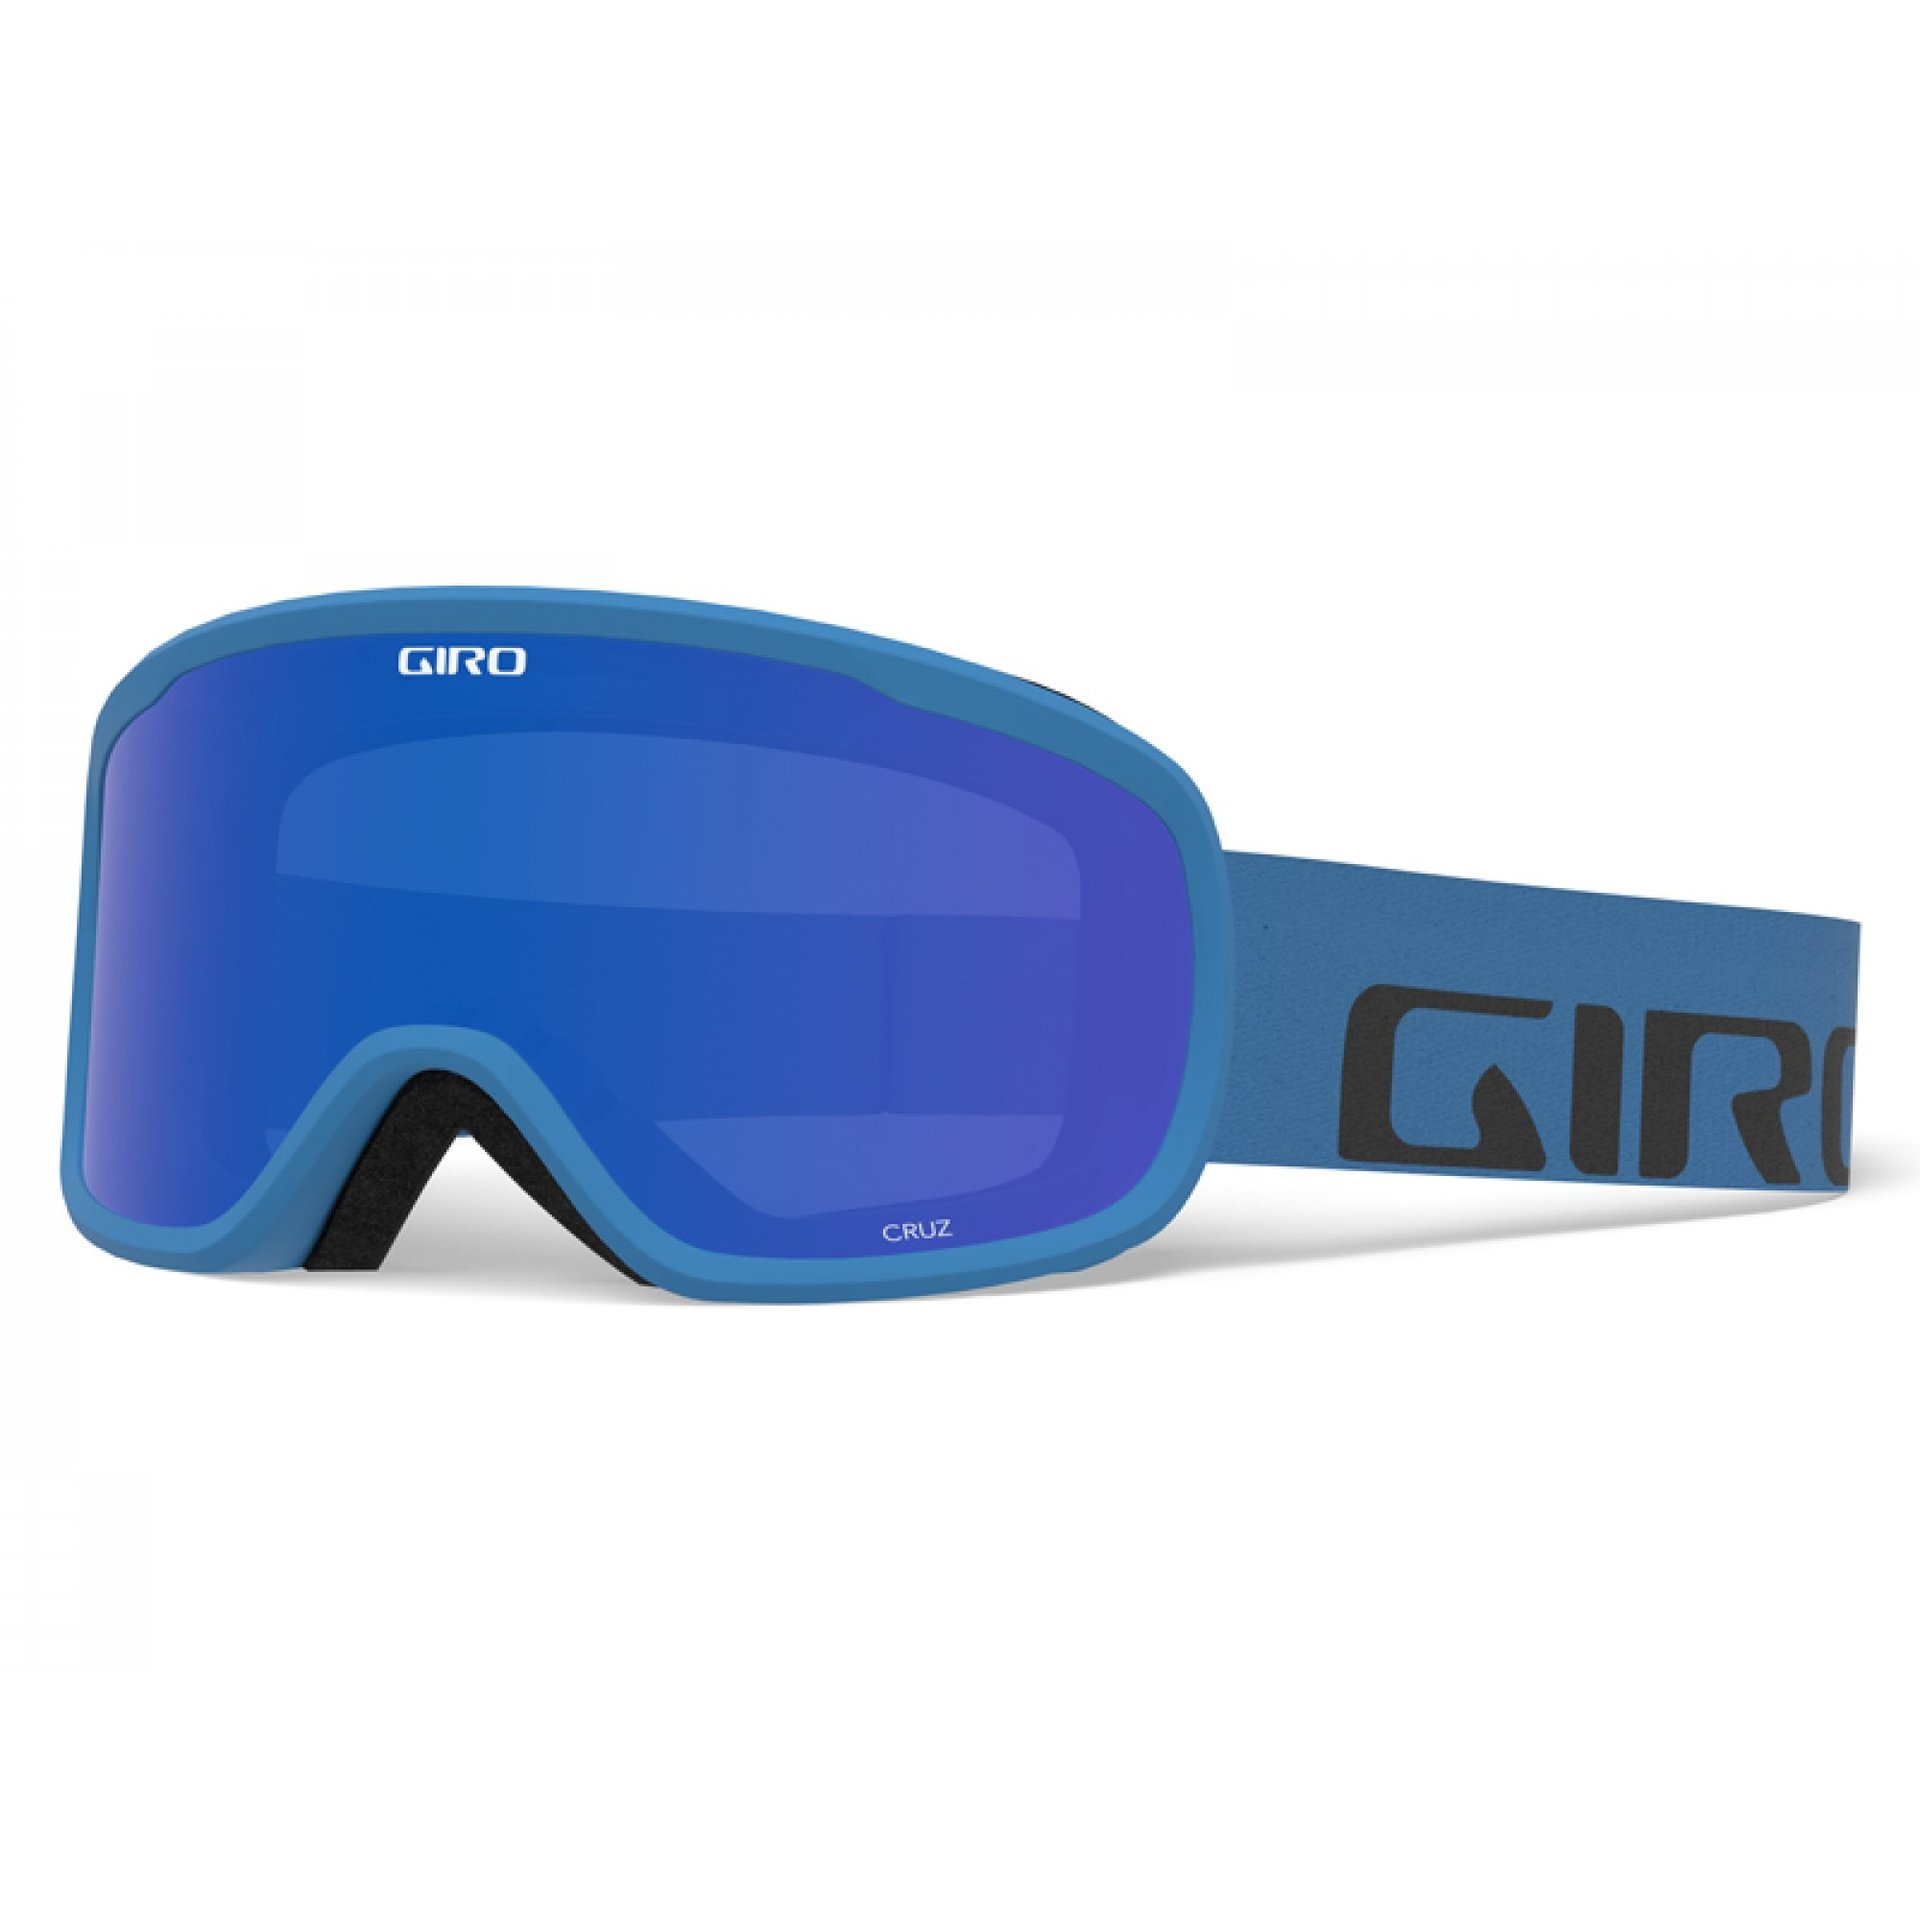 GOGLE GIRO CRUZ BLUE WORDMARK|GREY COBALT 1